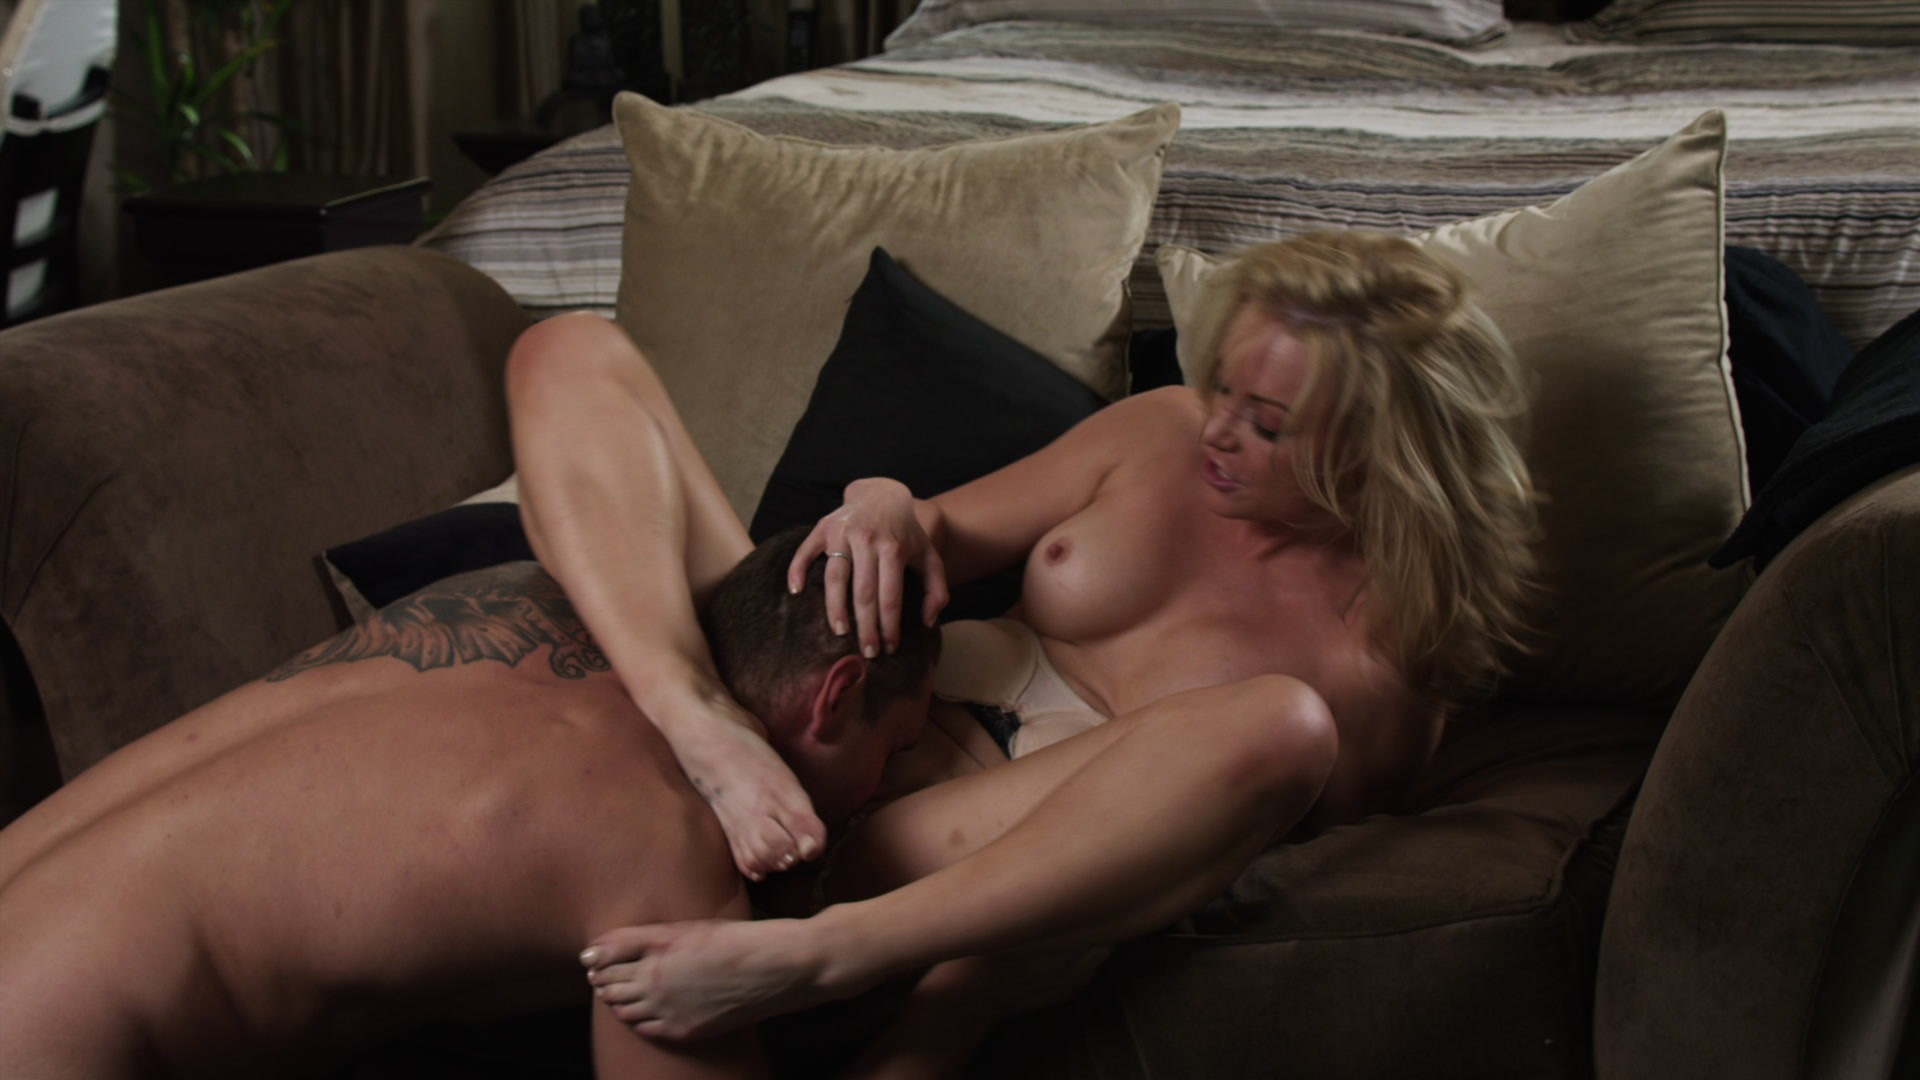 kayden hd kross videos porn